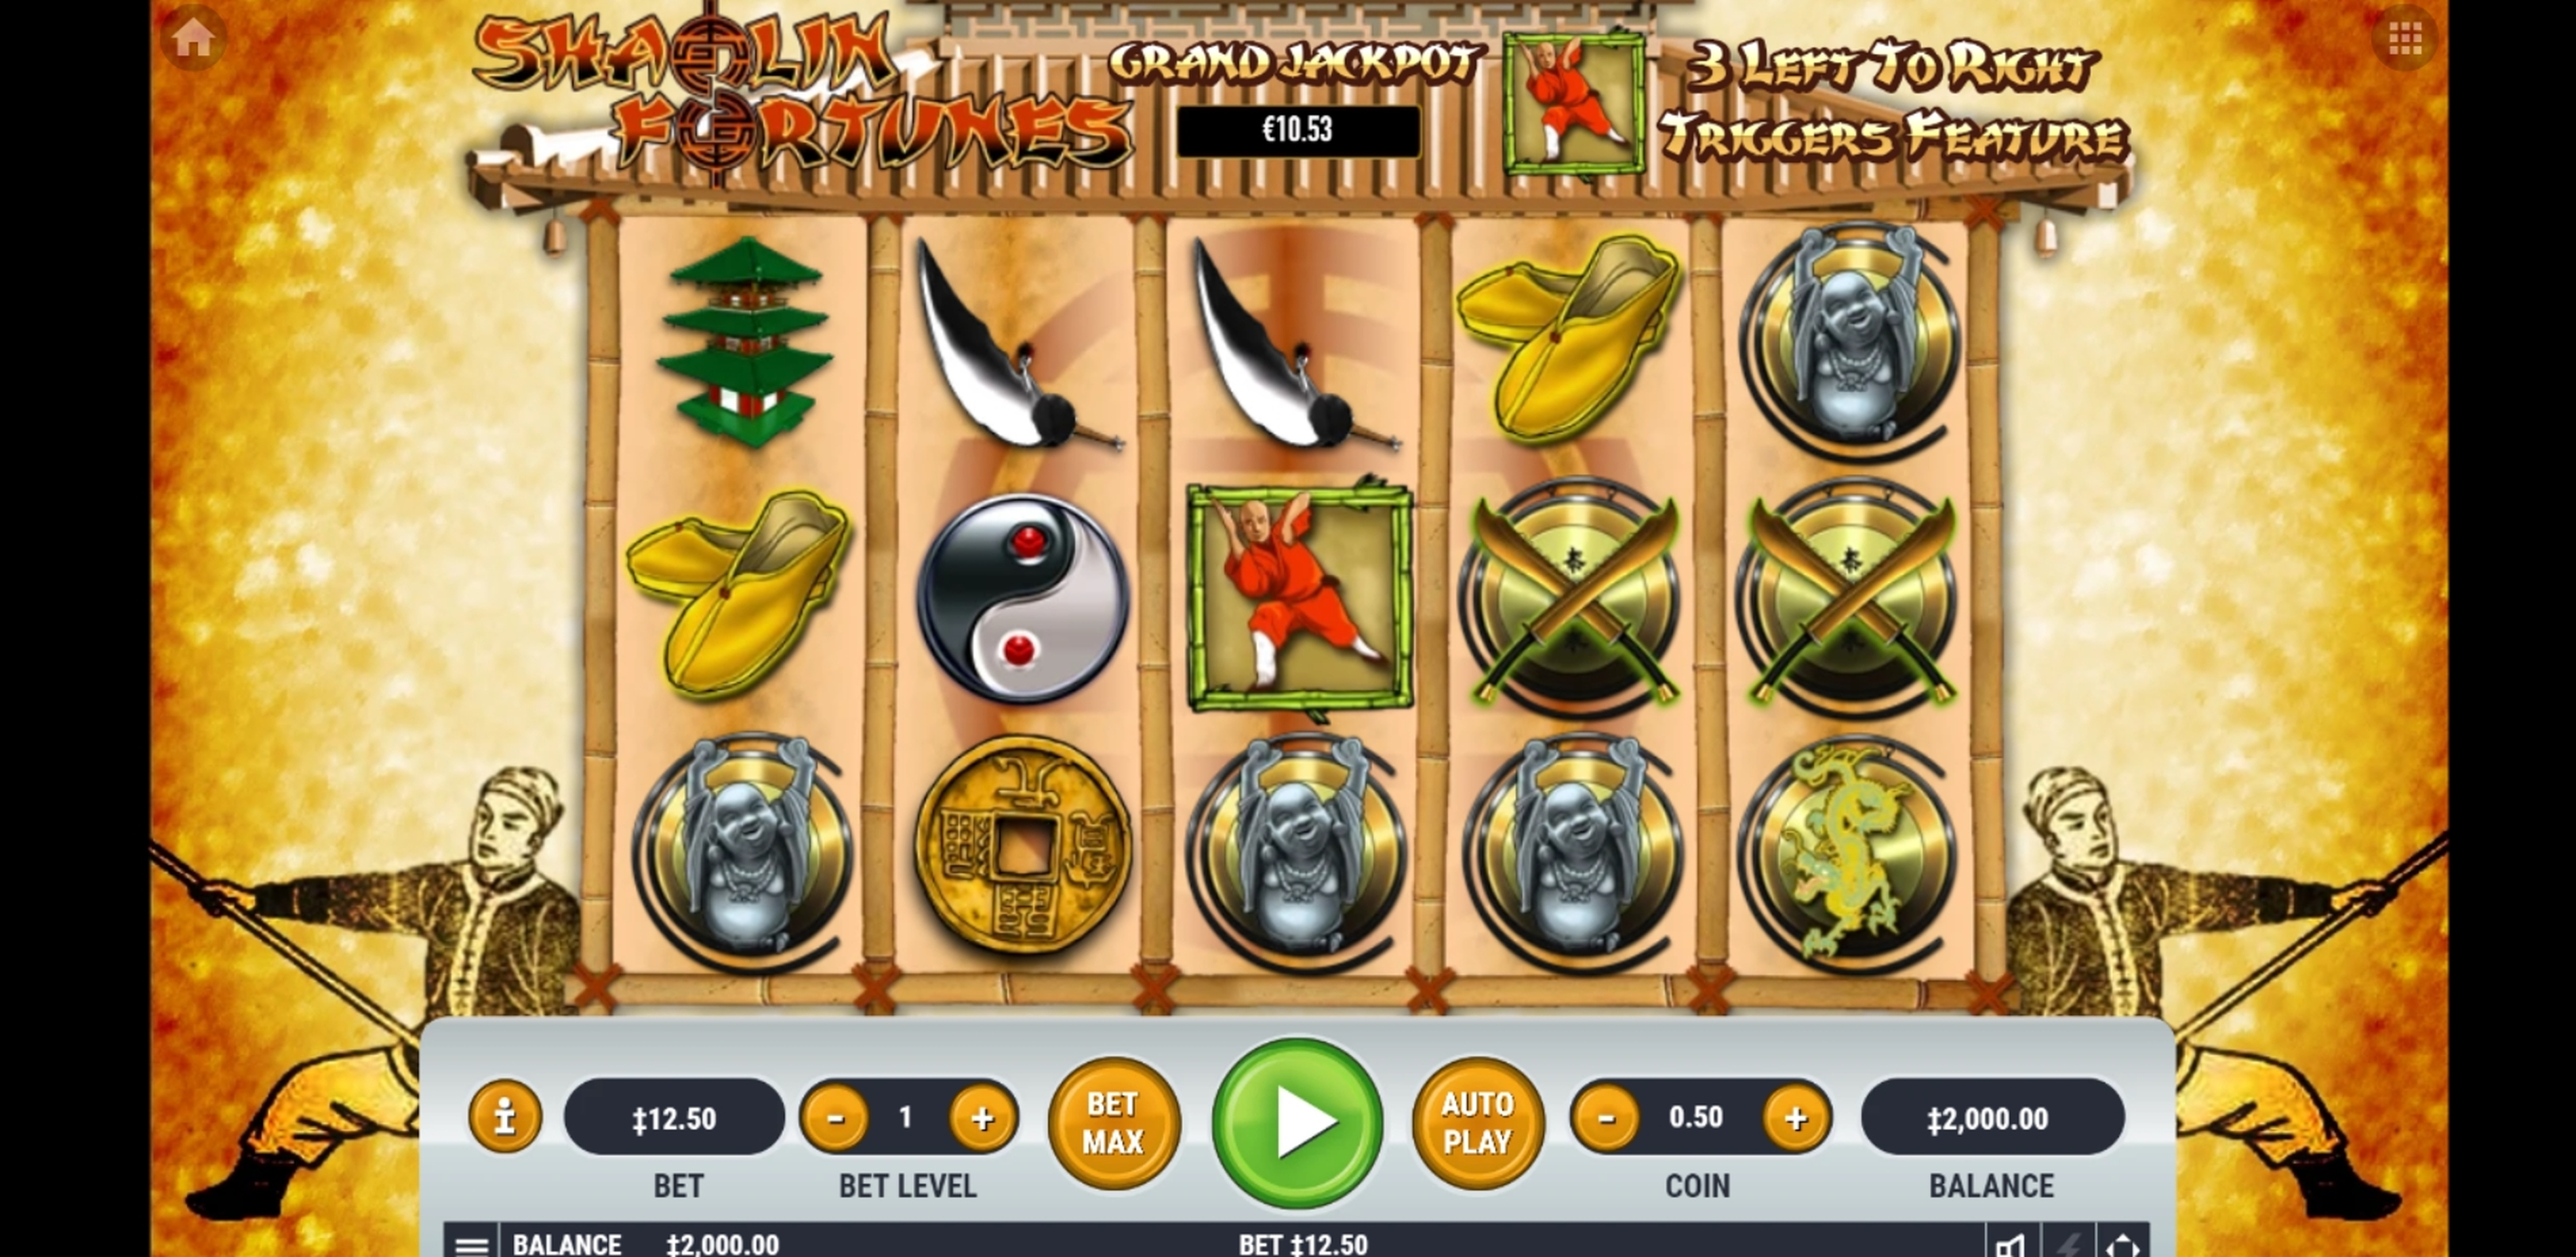 Reels in Shaolin Fortunes Slot Game by Habanero